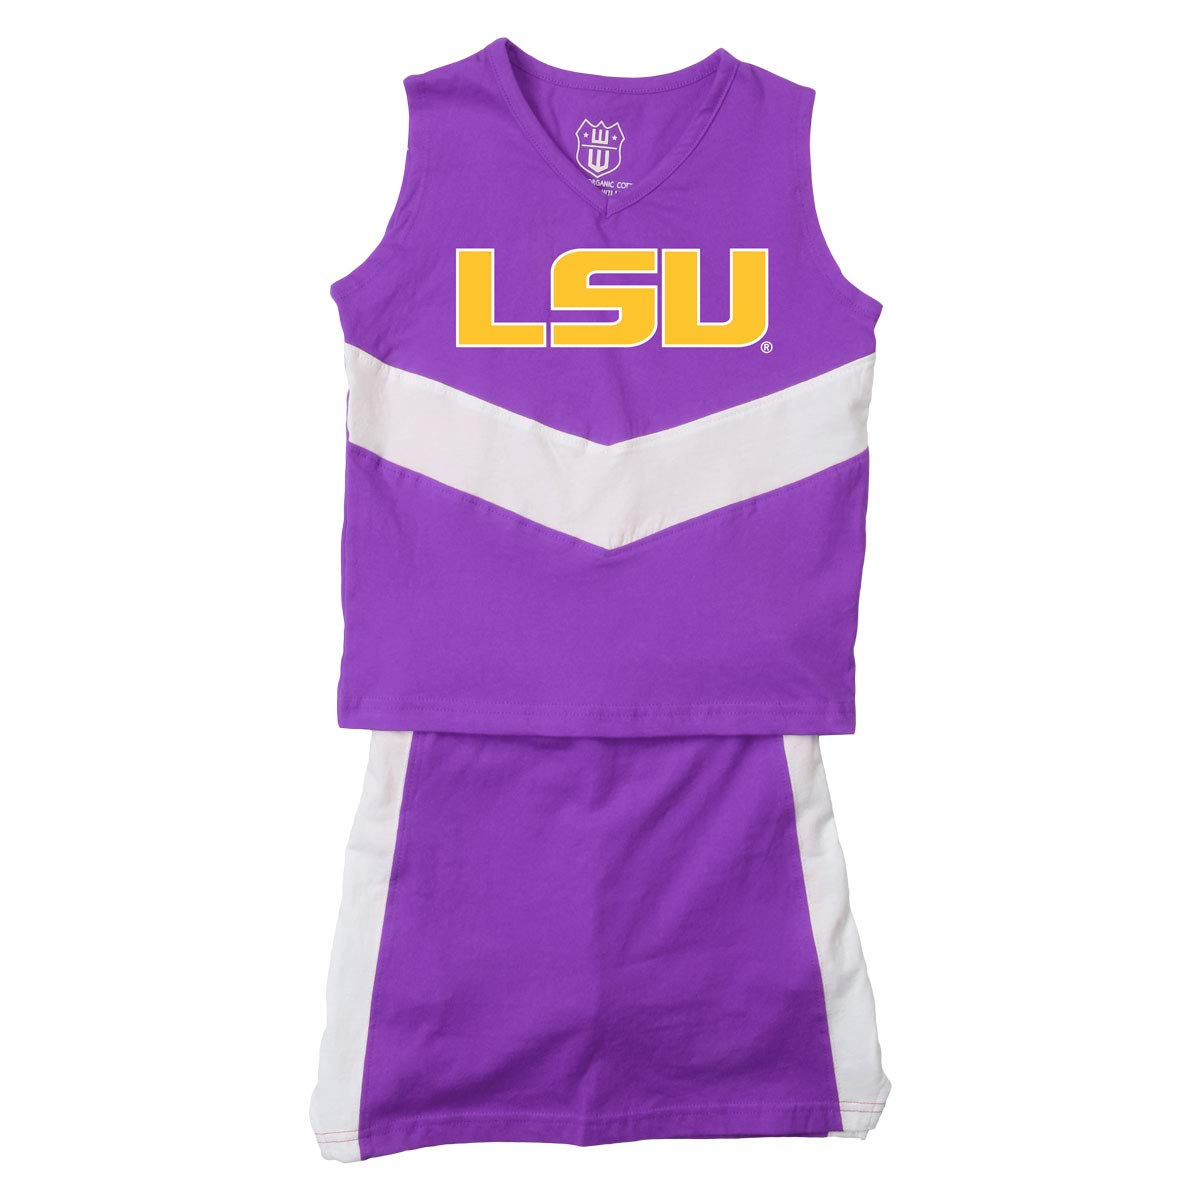 Cotton Willy NCAA Girls Sleeveless Tee